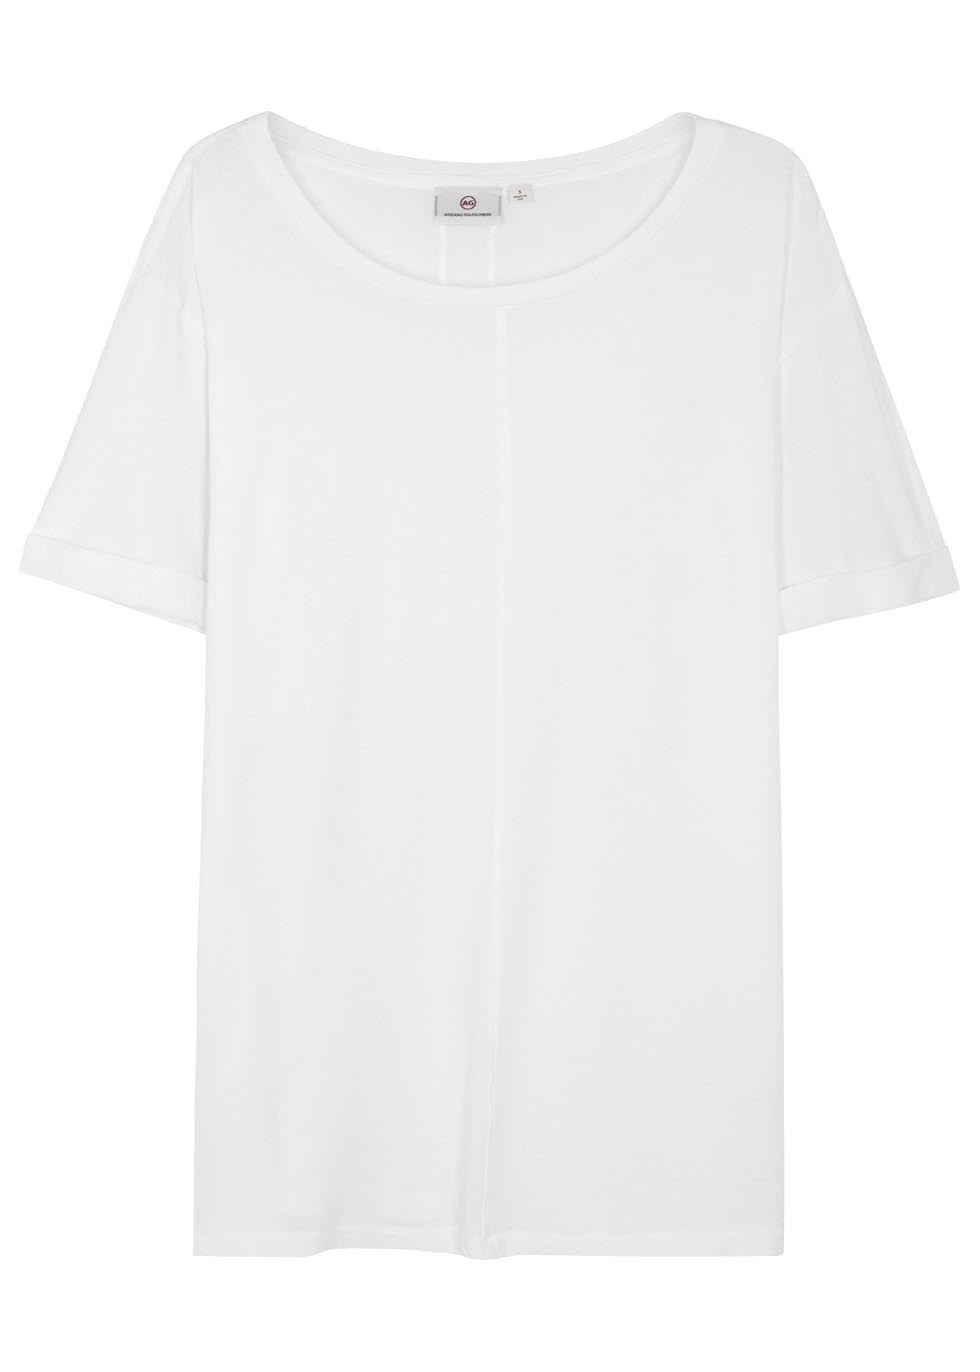 The Raw Grove White Cotton T Shirt - neckline: round neck; pattern: plain; style: t-shirt; predominant colour: white; occasions: casual; length: standard; fibres: cotton - 100%; fit: loose; sleeve length: short sleeve; sleeve style: standard; pattern type: fabric; texture group: jersey - stretchy/drapey; season: s/s 2016; wardrobe: basic